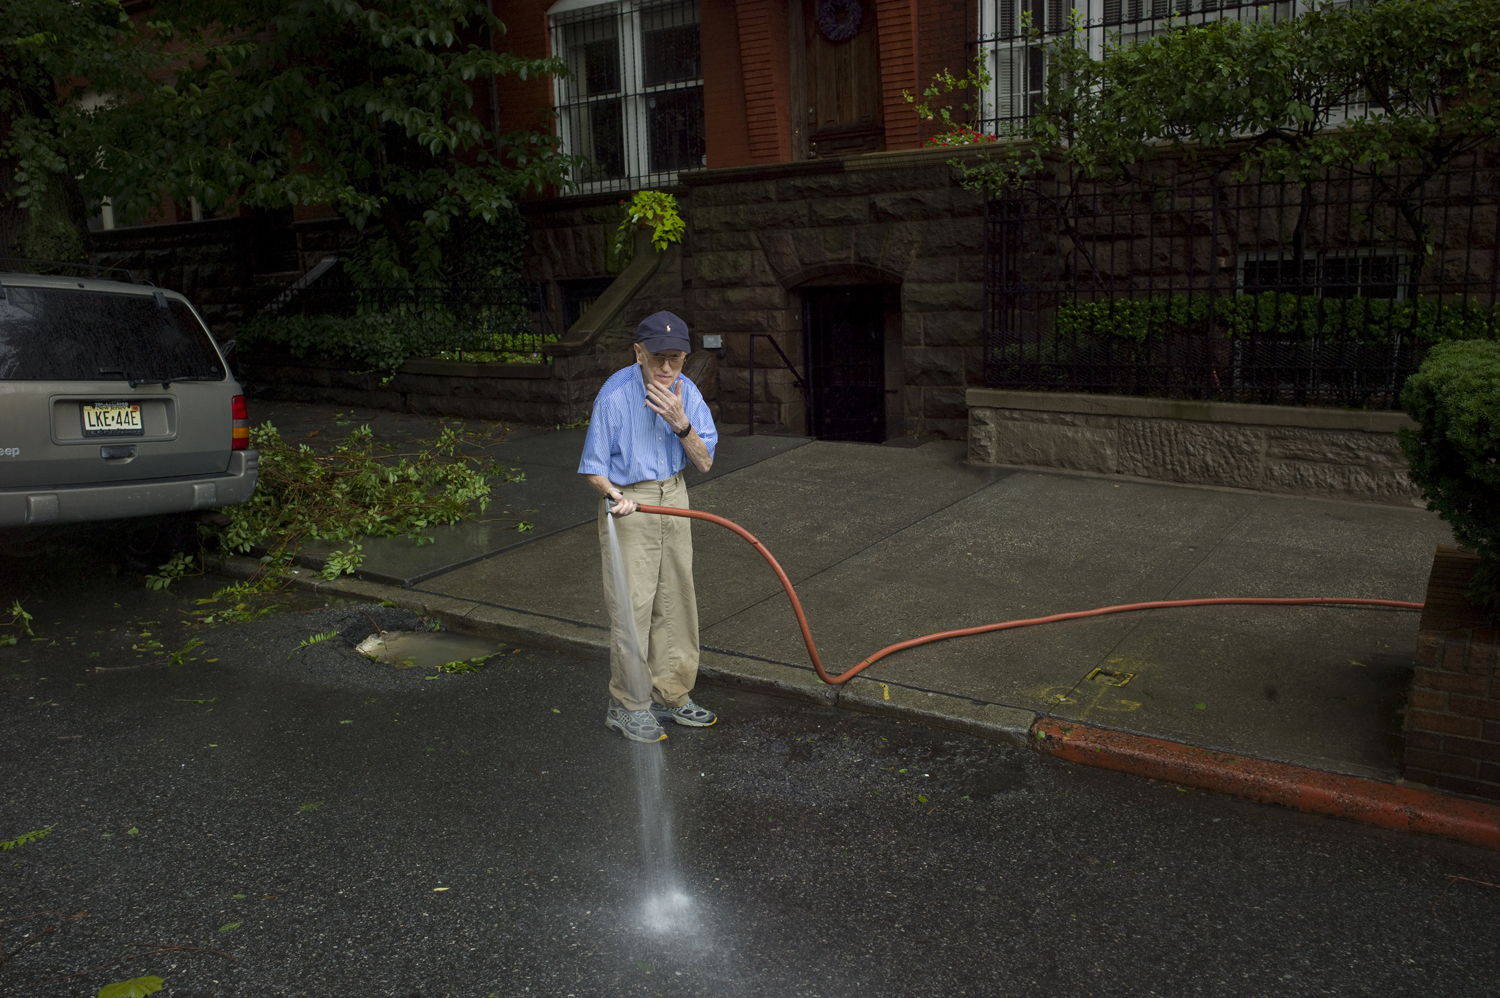 August 28, 2011, New York, NY. An elderly man cleans his sidewalk on Sunday after the storm.